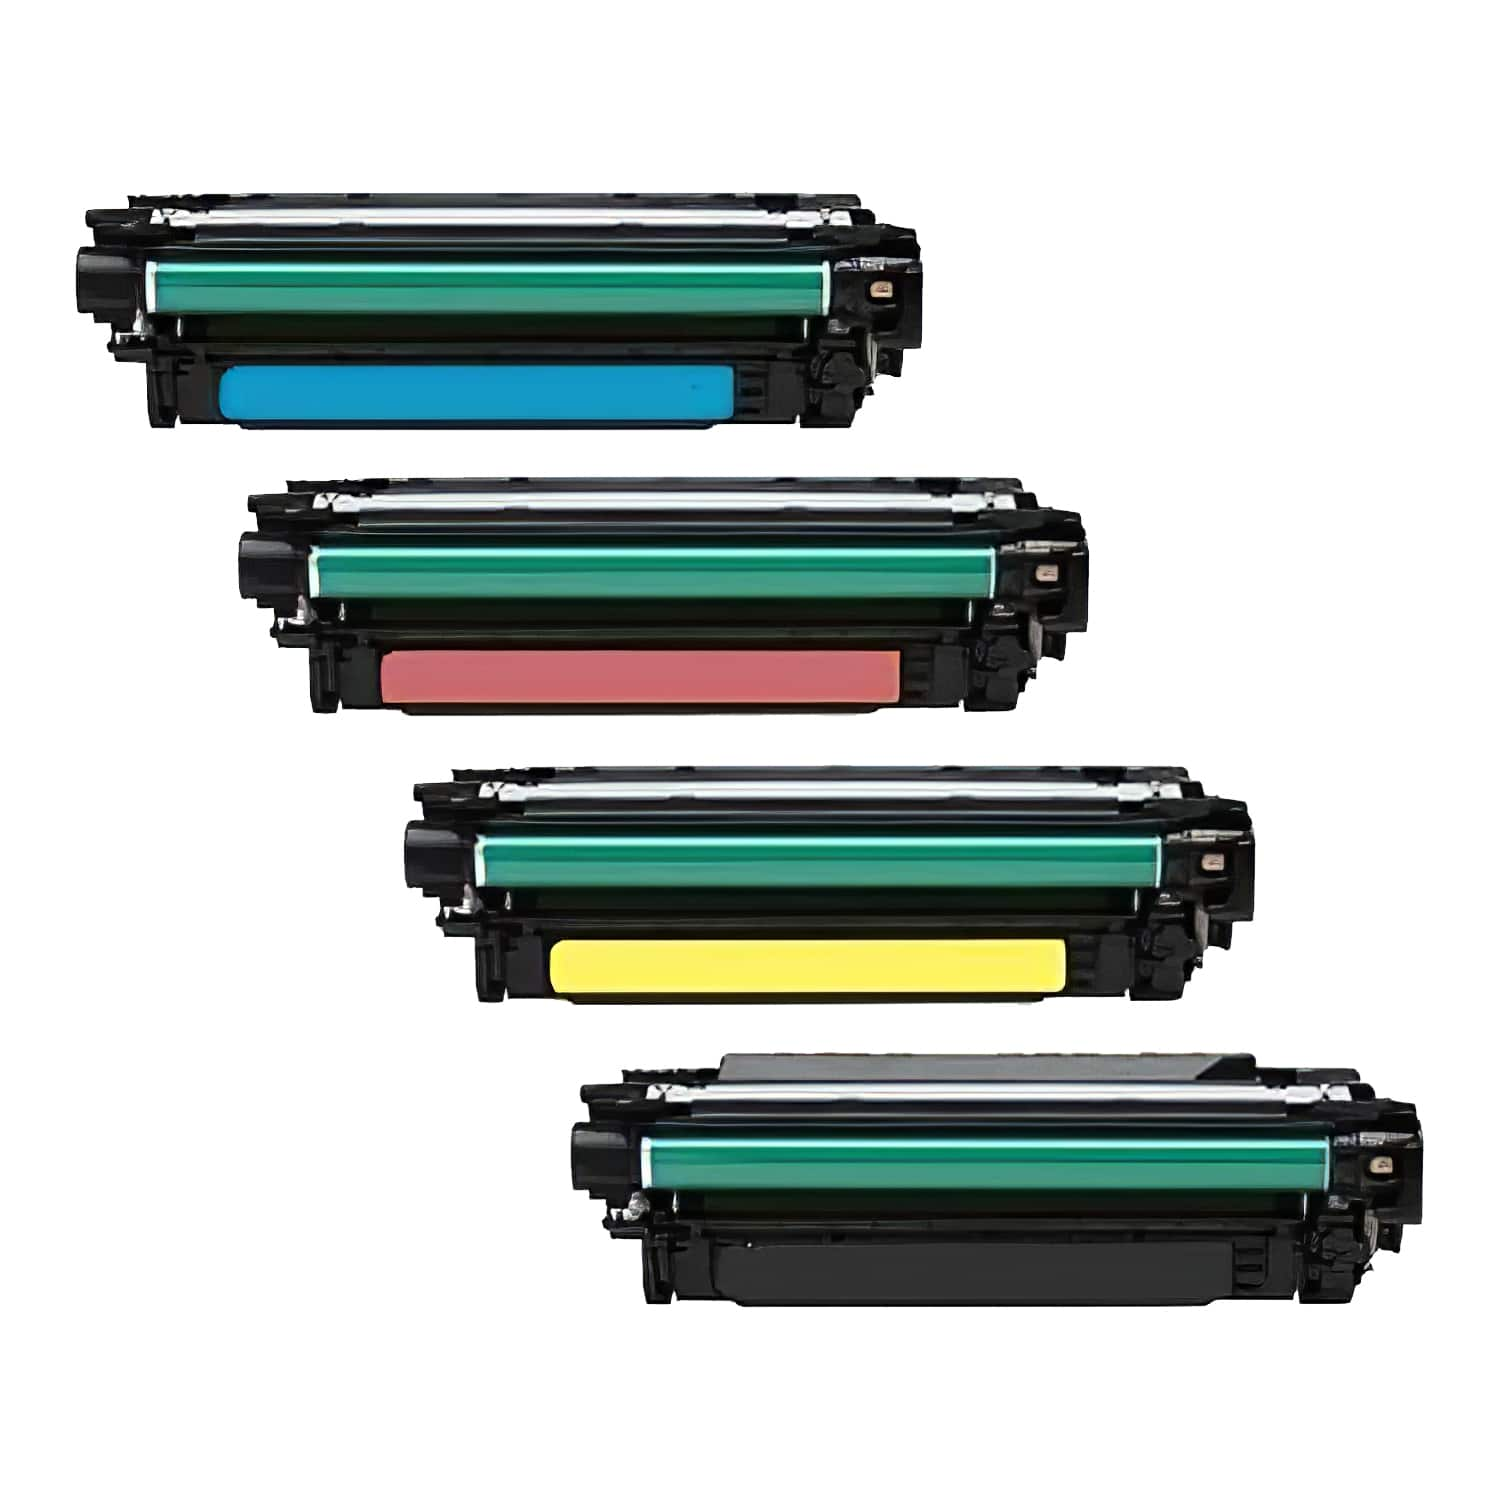 Remanufactured HP 305A-305X Toner High Capacity Pack - 4 Cartridges